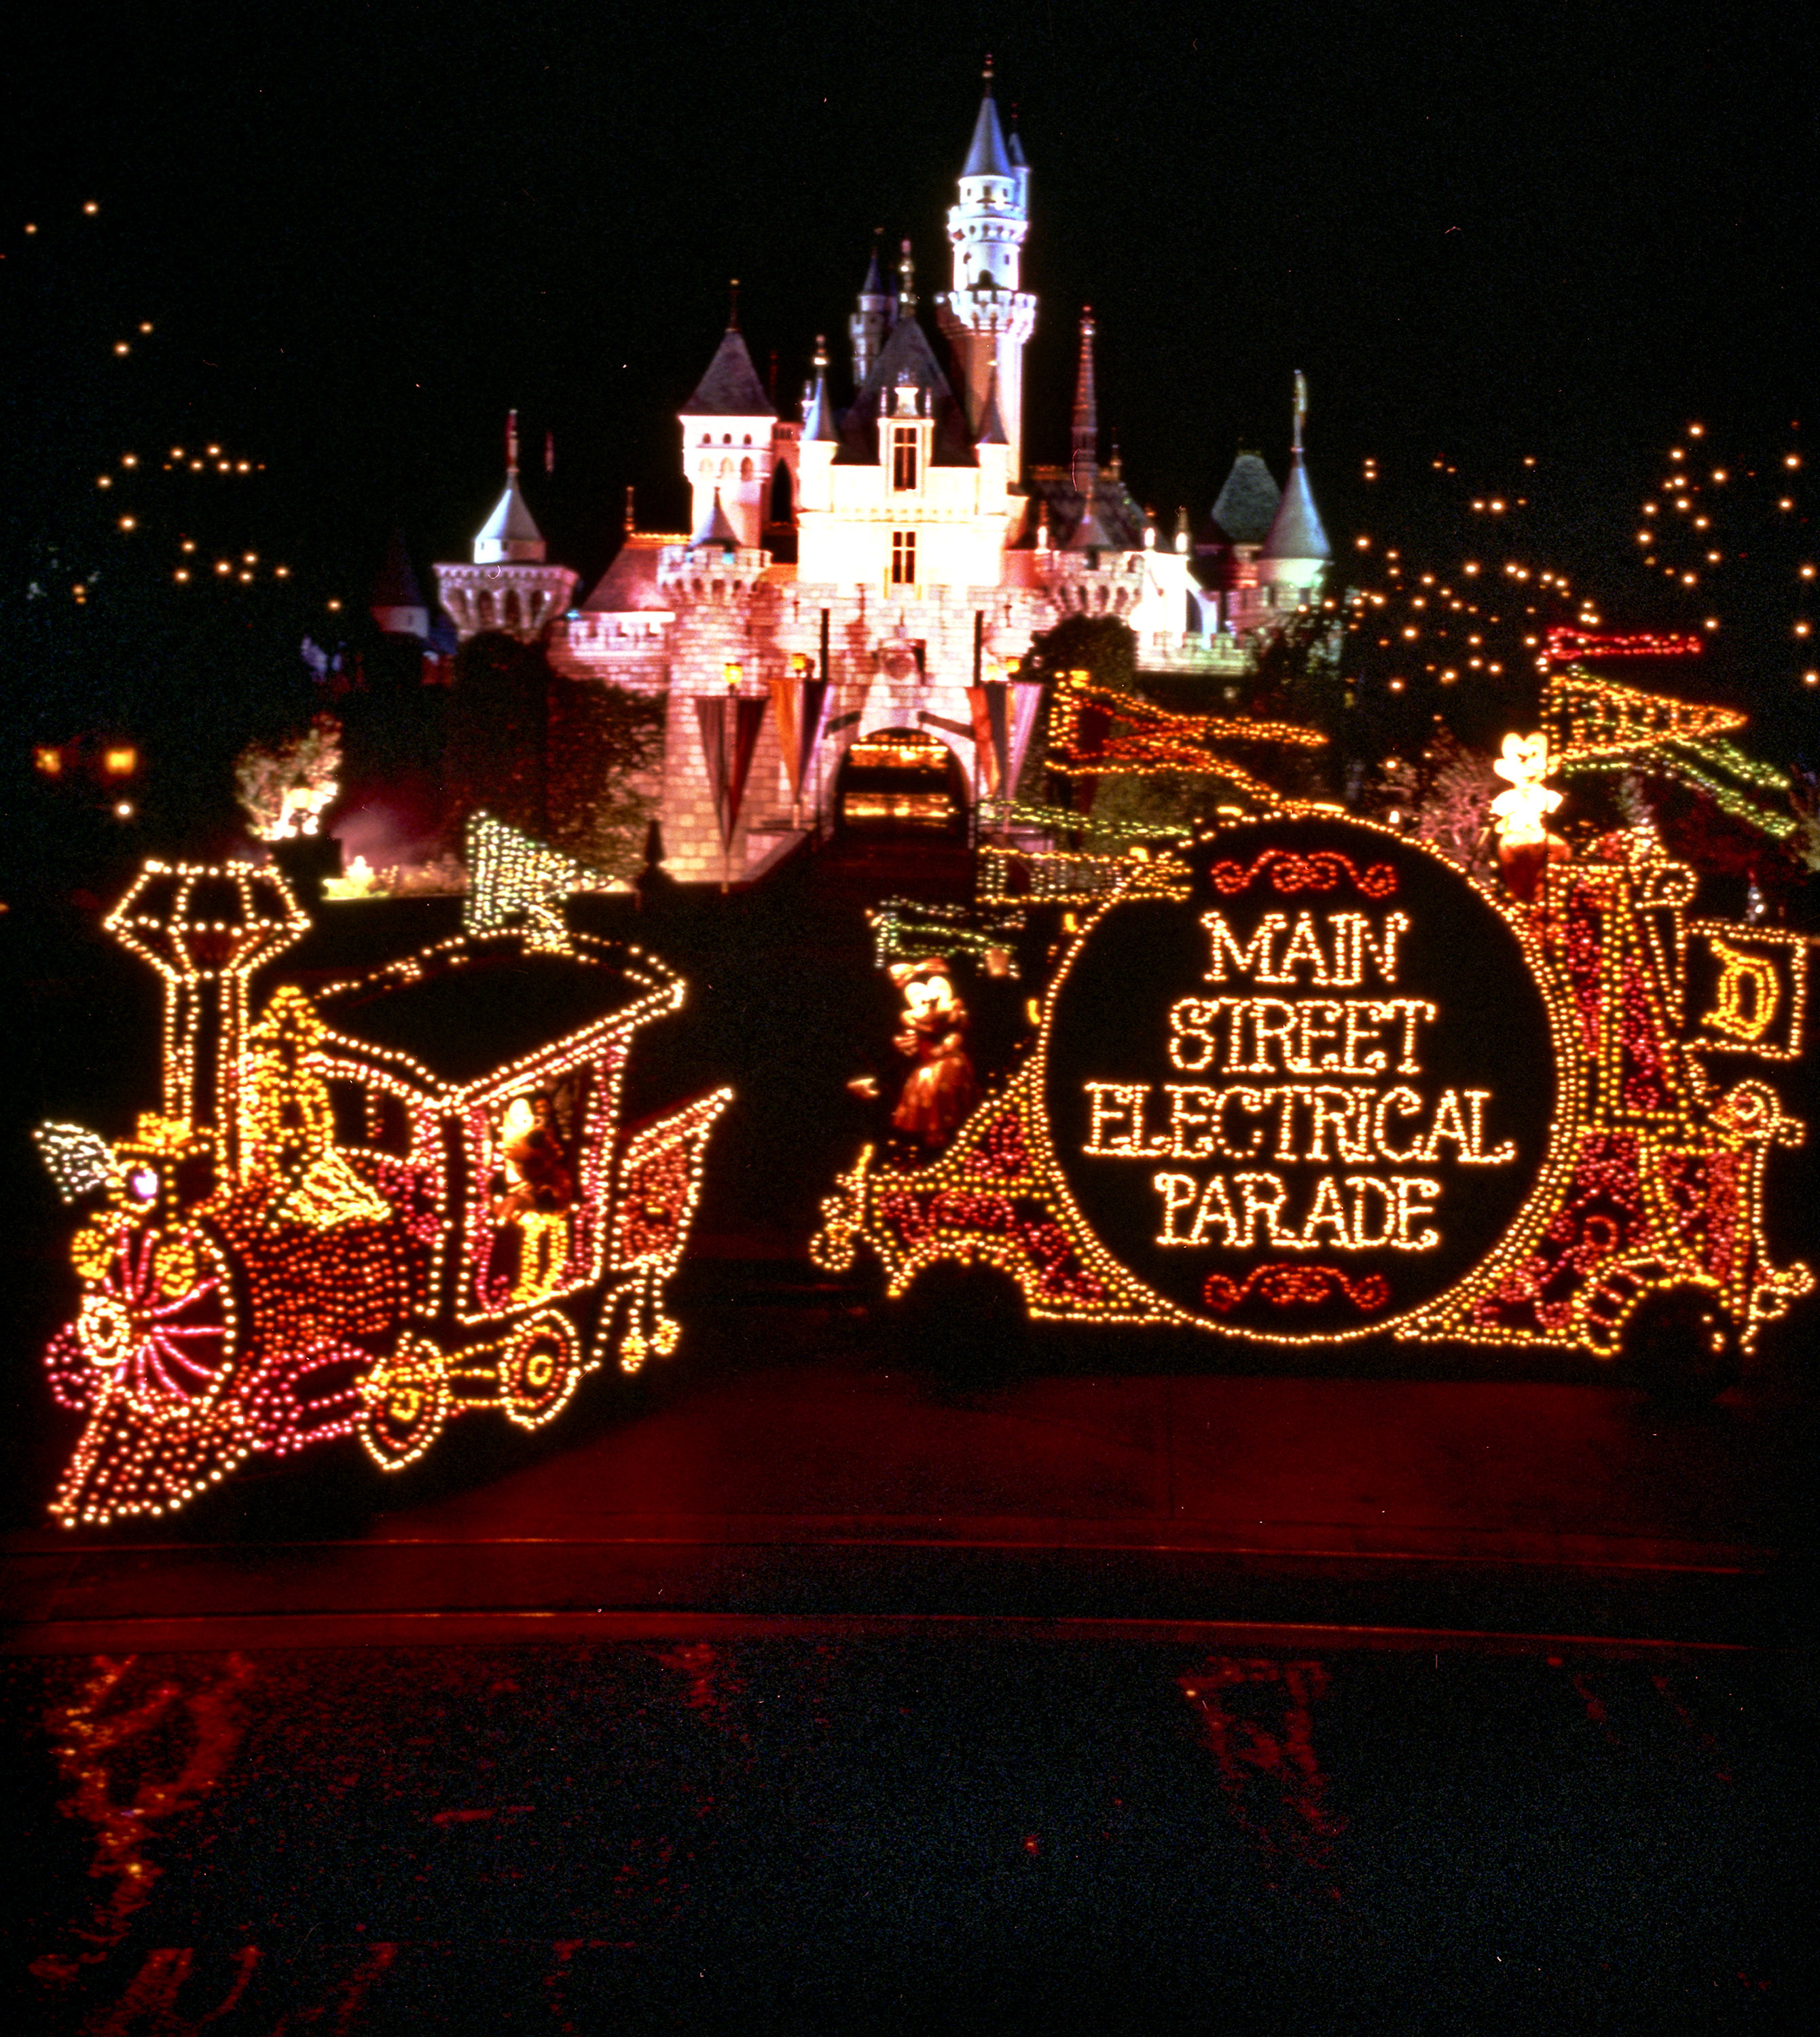 "MAIN STREET ELECTRICAL PARADE RETURNS TO DISNEYLAND RESORT – Brought to light in the early 1970s, the Main Street Electrical Parade helped establish a Disney Parks reputation for innovative, trend-setting live entertainment. As floats illuminate the parade route, this vibrant spectacular brings a variety of Disney animated feature films to life with approximately half a million twinkling lights. The parade's iconic musical theme, the electrically synthesized ""Baroque Hoedown,"" is a beloved fan-favorite interwoven with classic Disney themes. The Main Street Electrical Parade will celebrate a colorful homecoming at Disneyland Park beginning Friday, Jan. 20, 2017. (Disneyland Resort)"